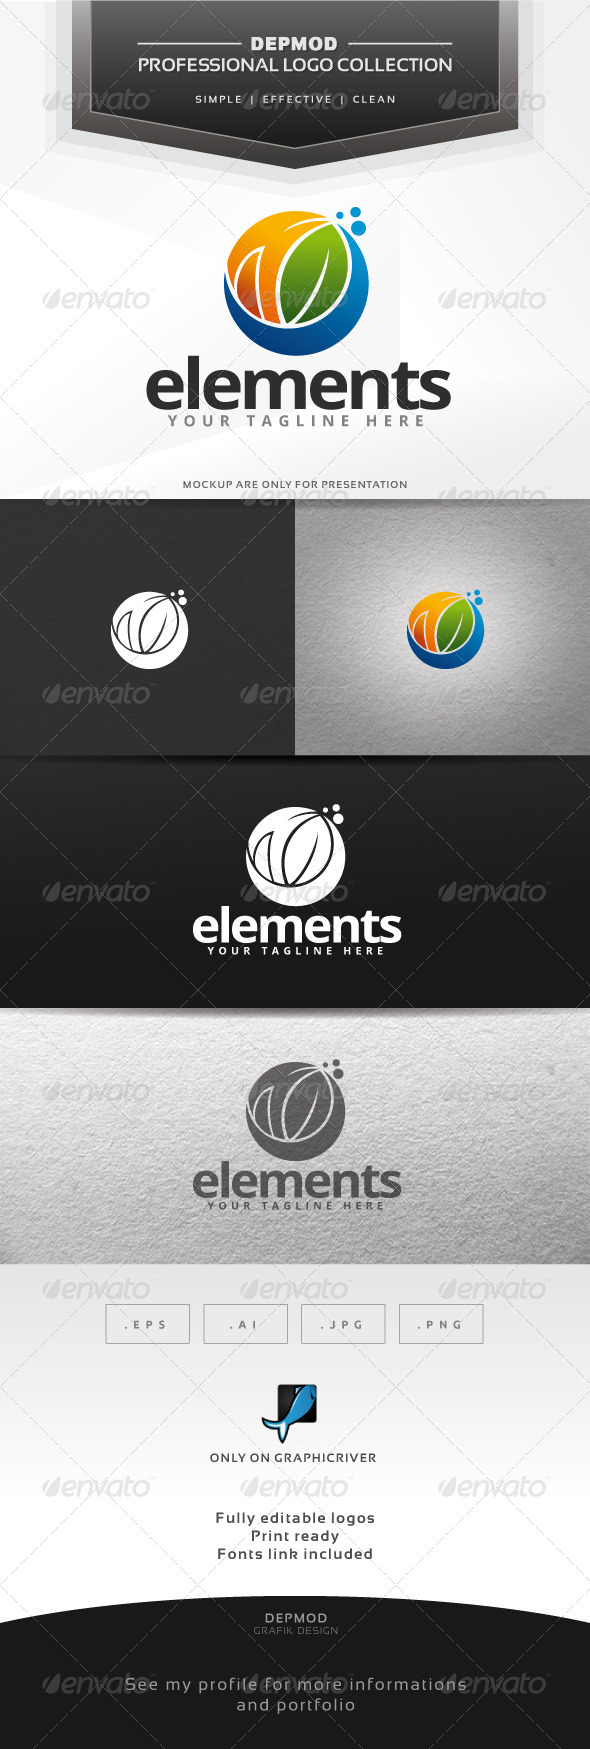 Elements Logo - Nature Logo Templates